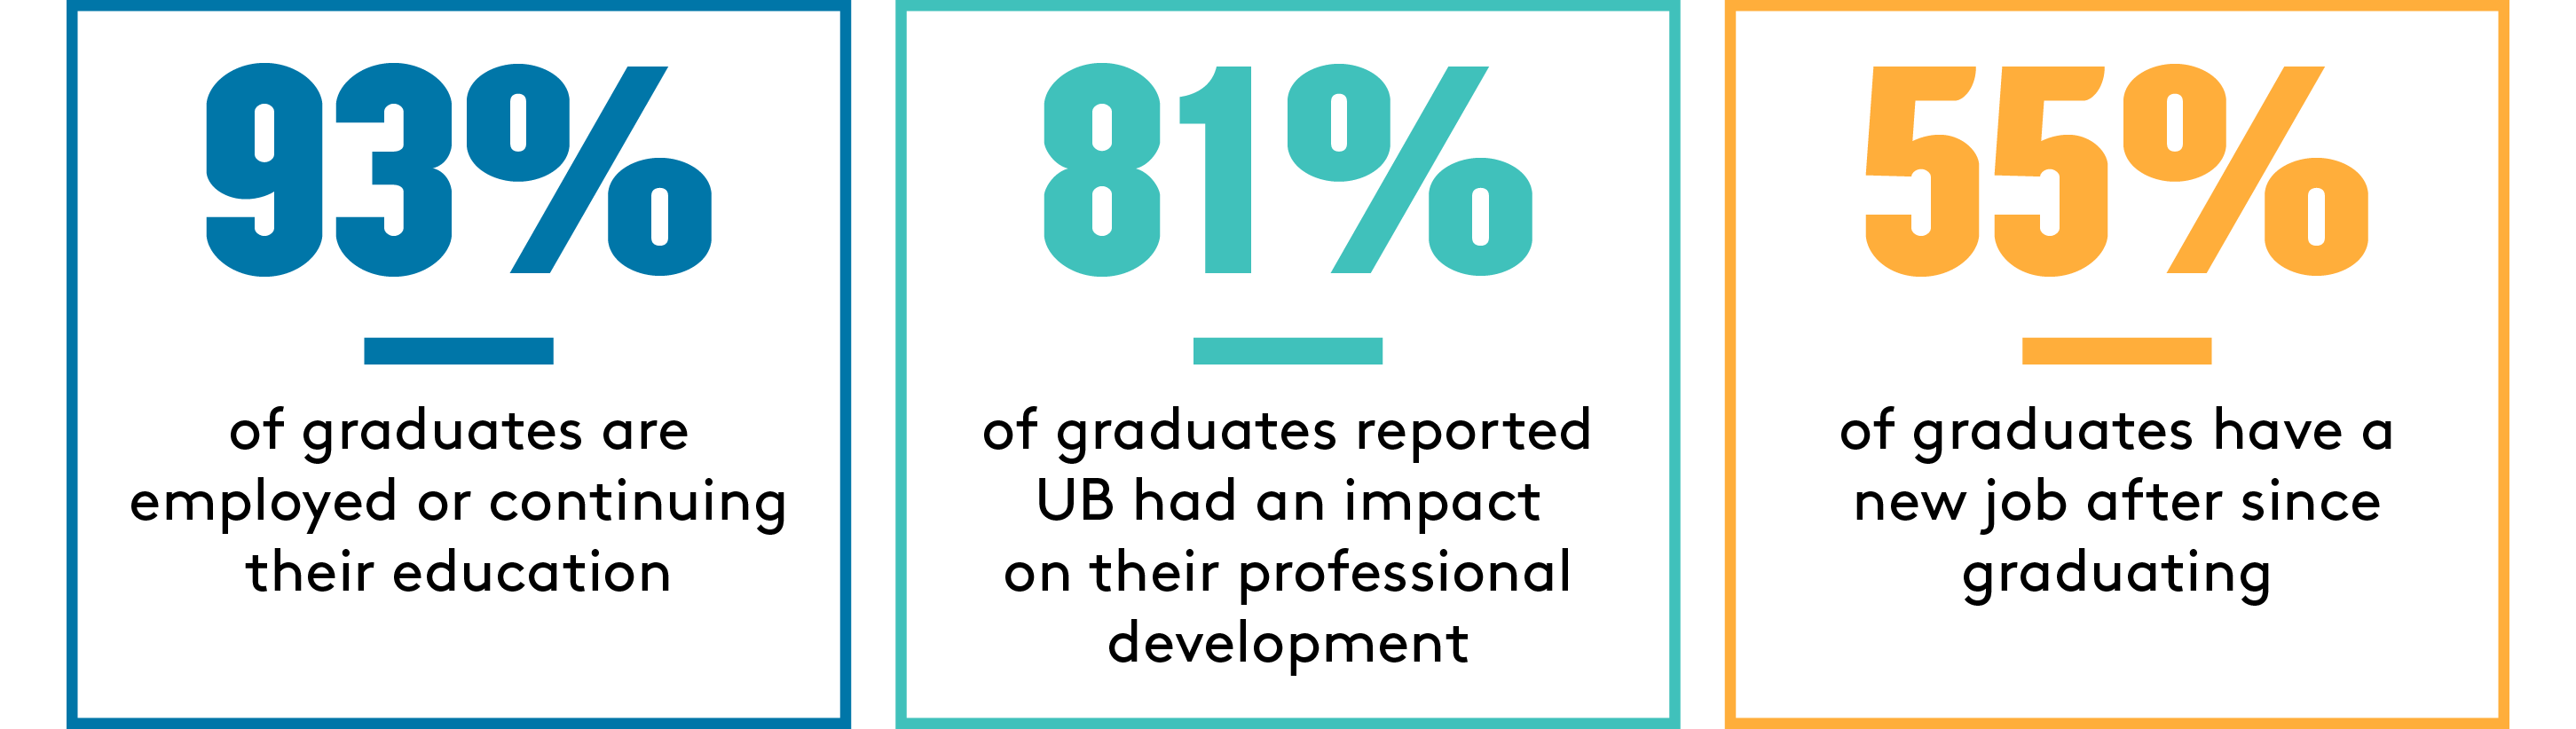 89% of graduates are employed or continuing their education; 75% of graduates reported UB had an impact on their professional development; 67% of graduates obtained internships while at UB; 67% of graduates are working in their field of interest; 41% of graduates have a new job since graduating; 14% used a UB connection to find their current position